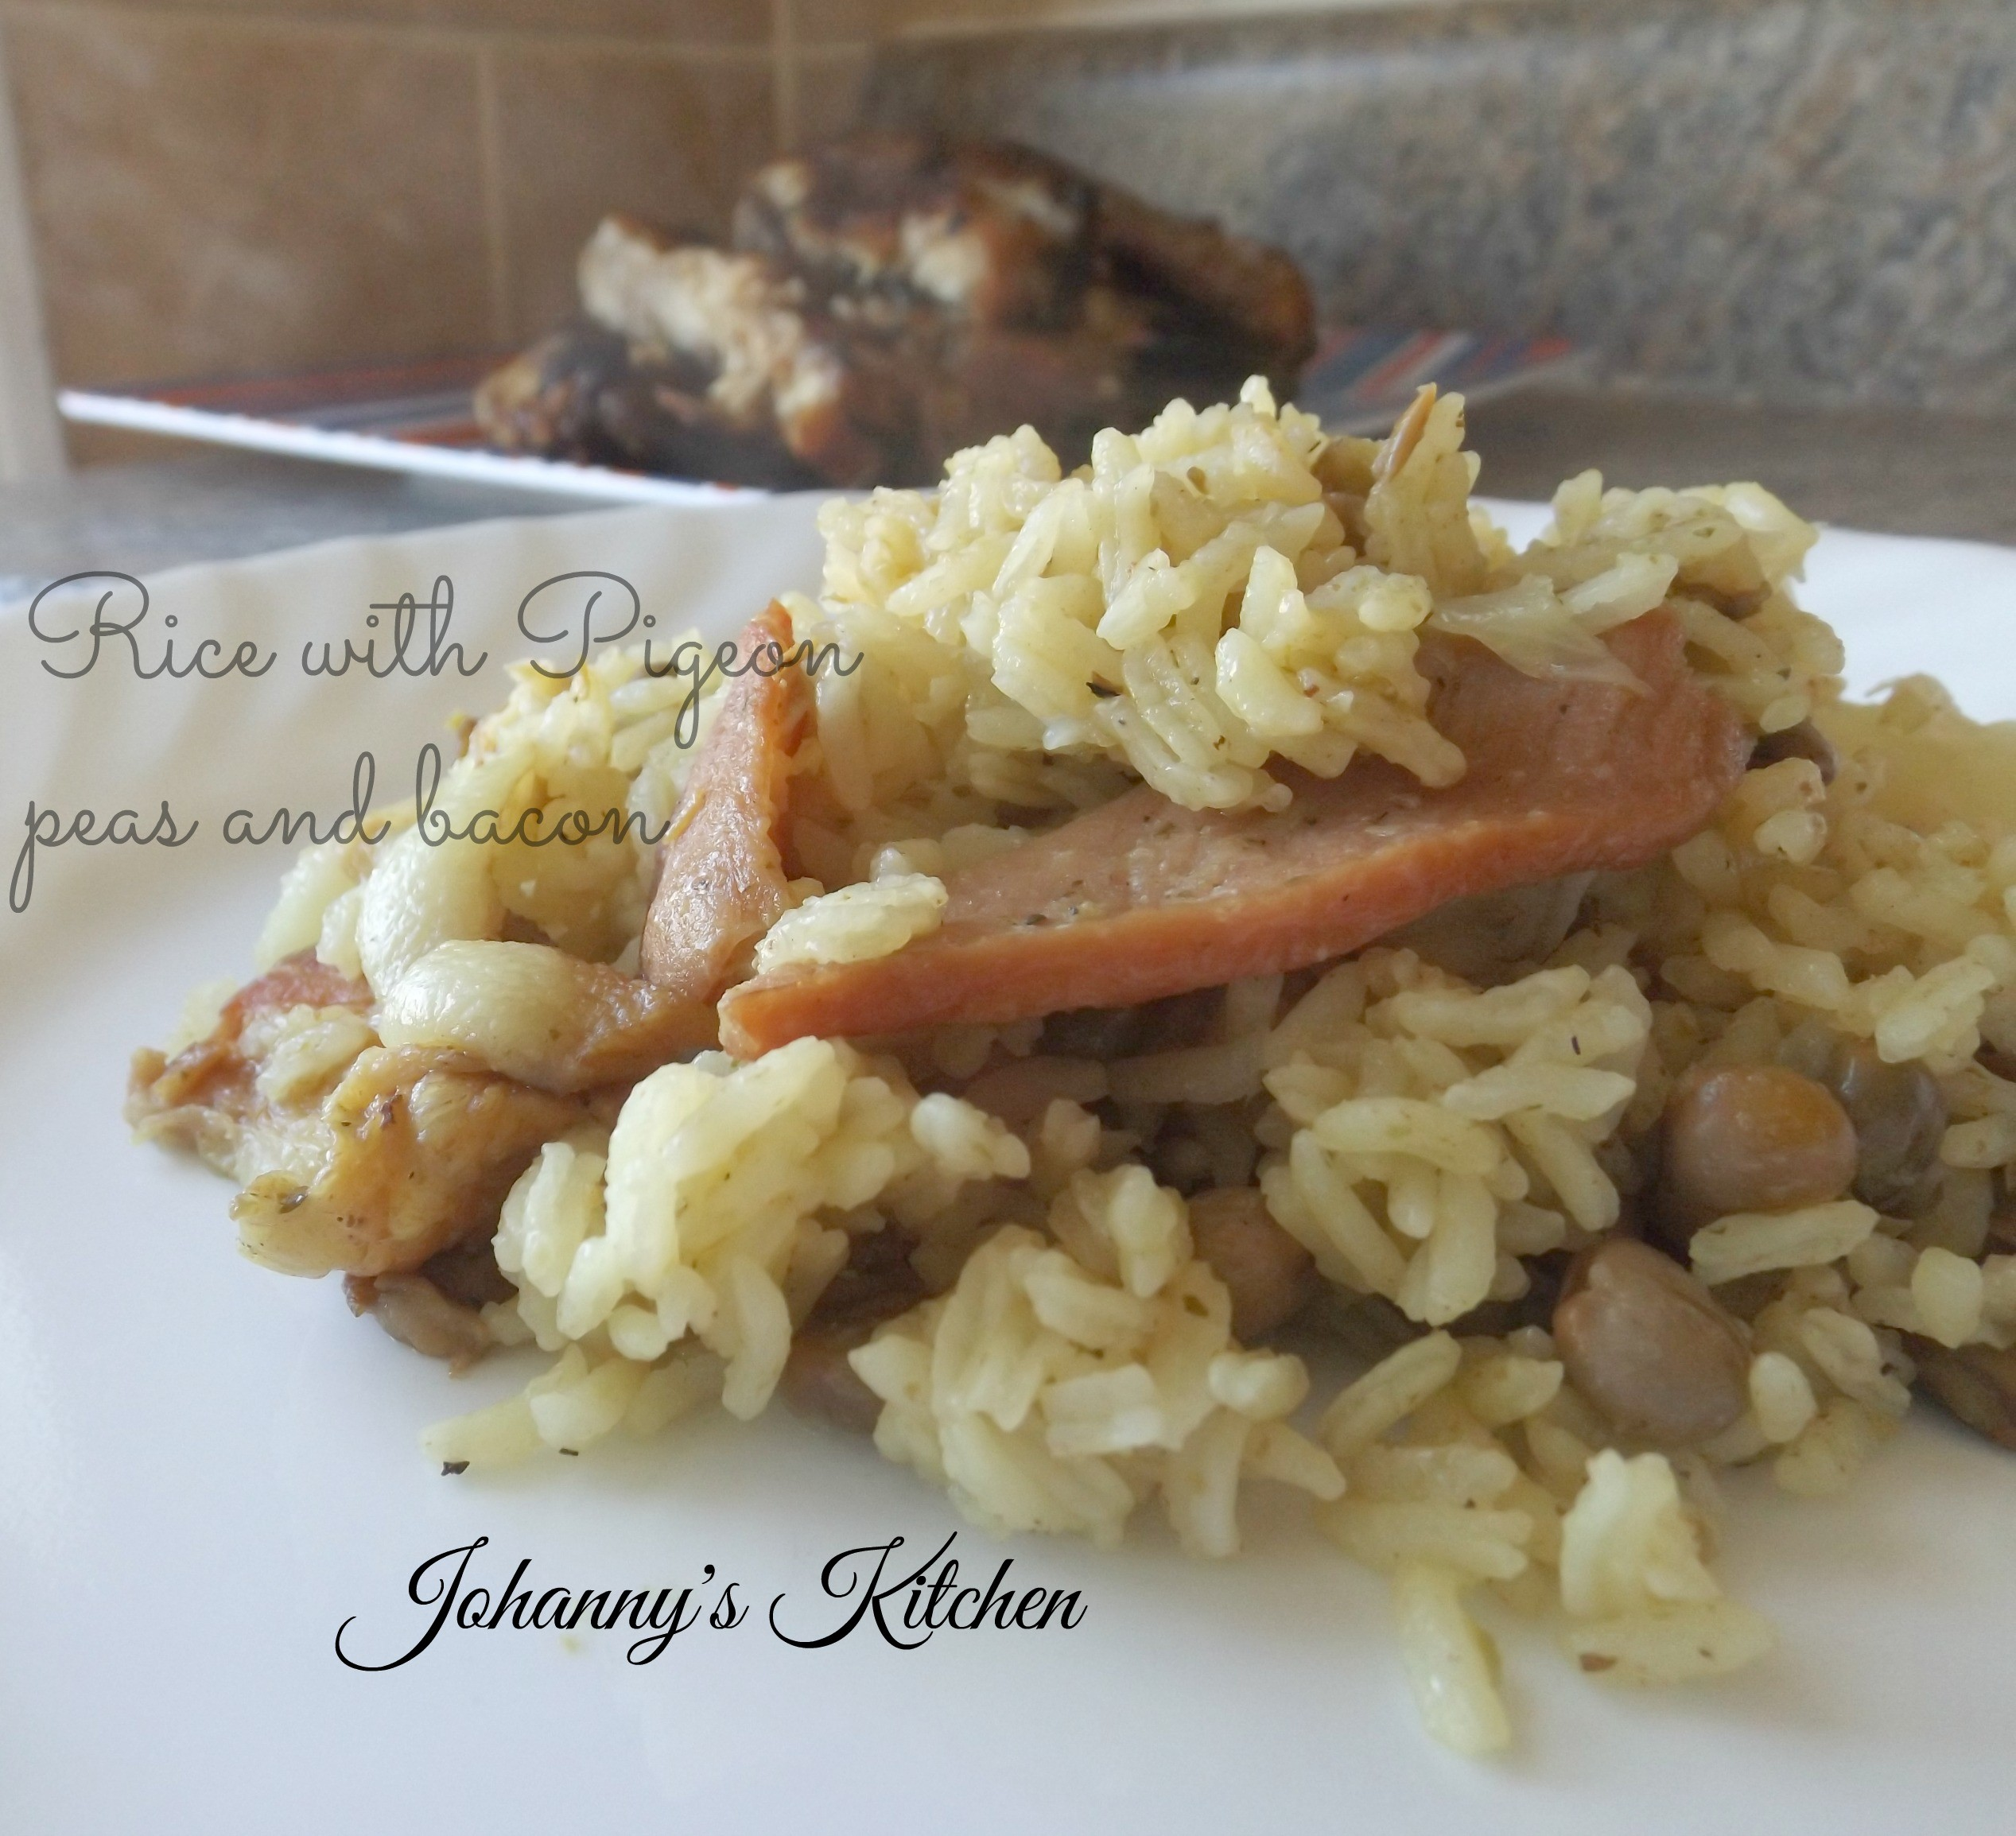 Arroz con guandules y tocineta (Rice with pigeon peas and bacon)